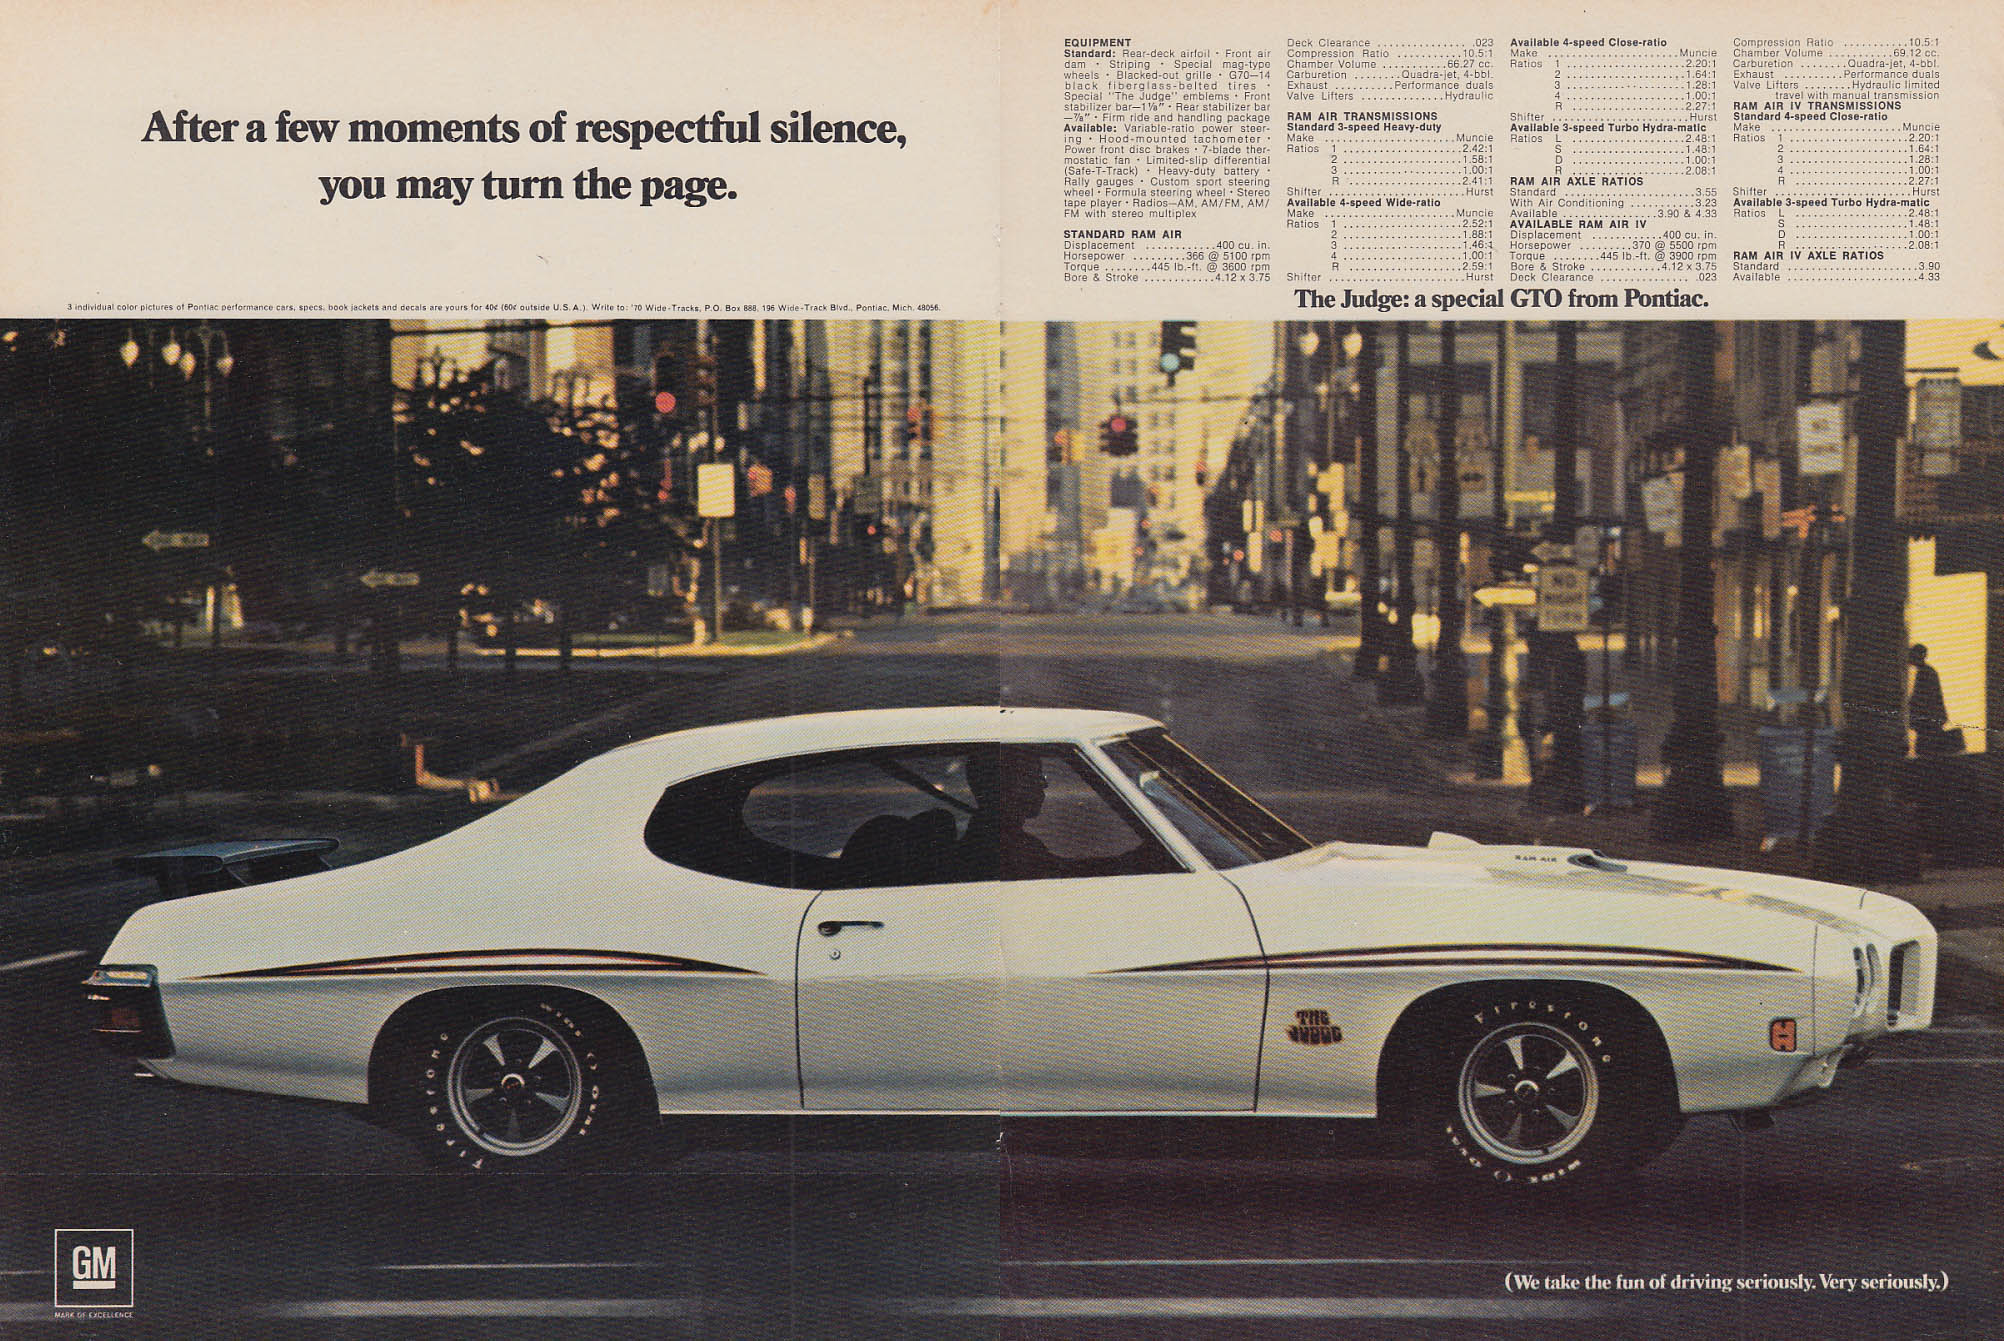 After respectful silence you may turn the page Pontiac GTO Judge ad 1970 v